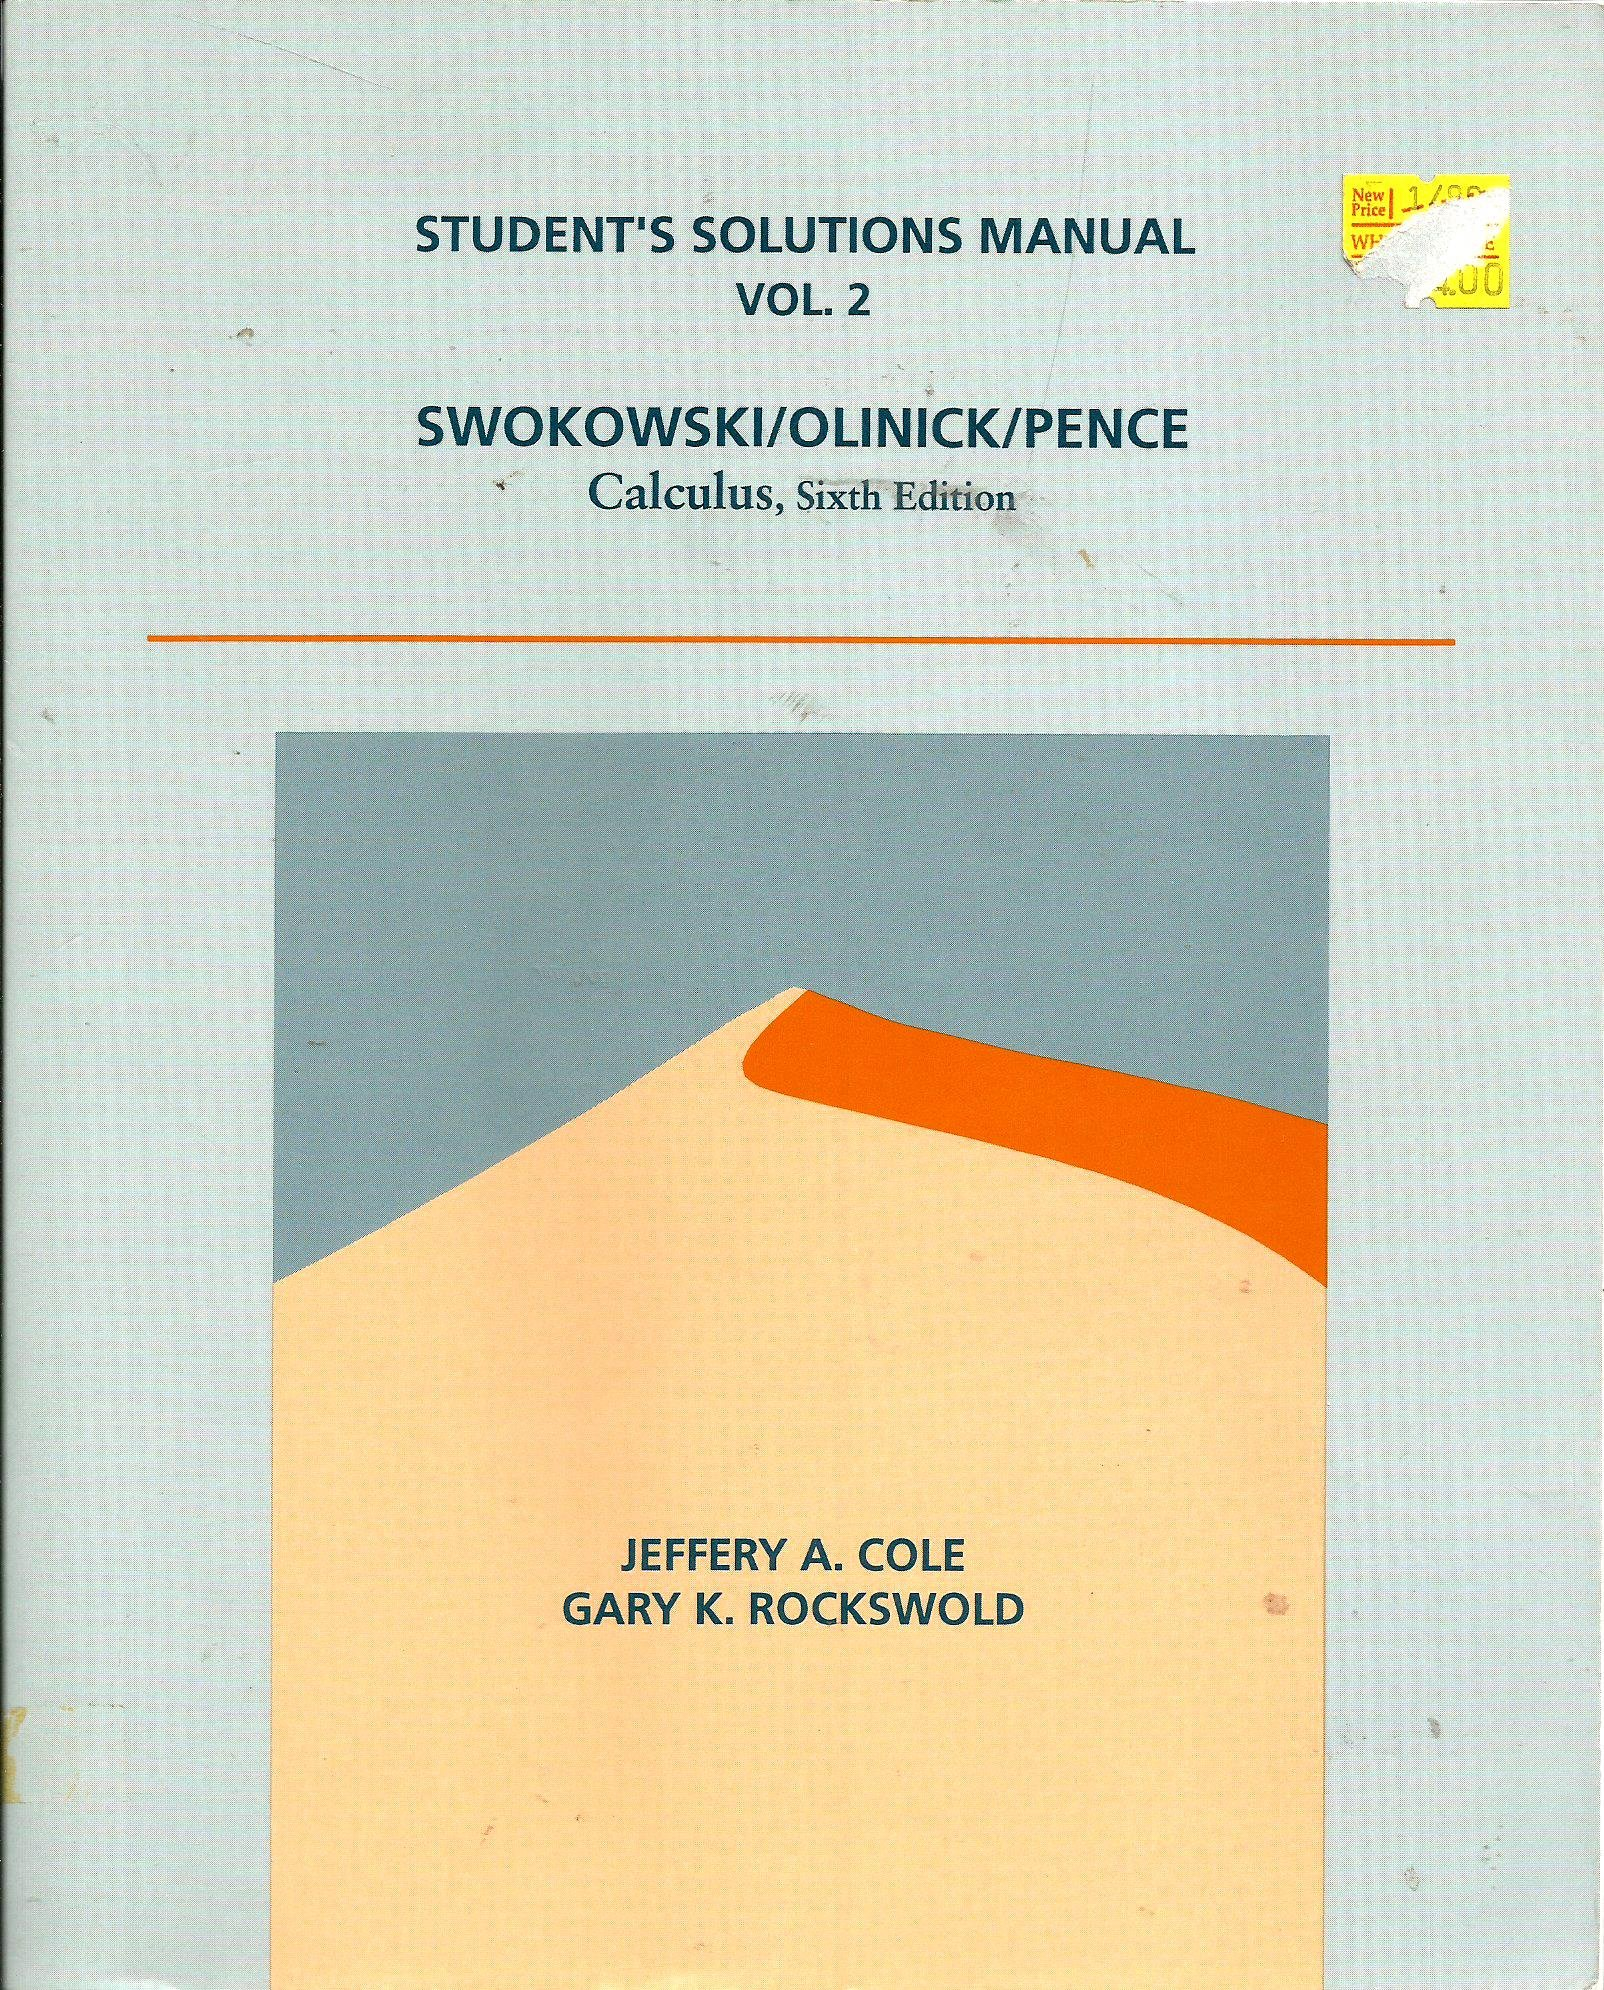 Calculus, 6th Edition, Vol 2, Student Solutions Manual: SWOKOWSKI, OLINICK,  PENCE: 9780534936297: Amazon.com: Books